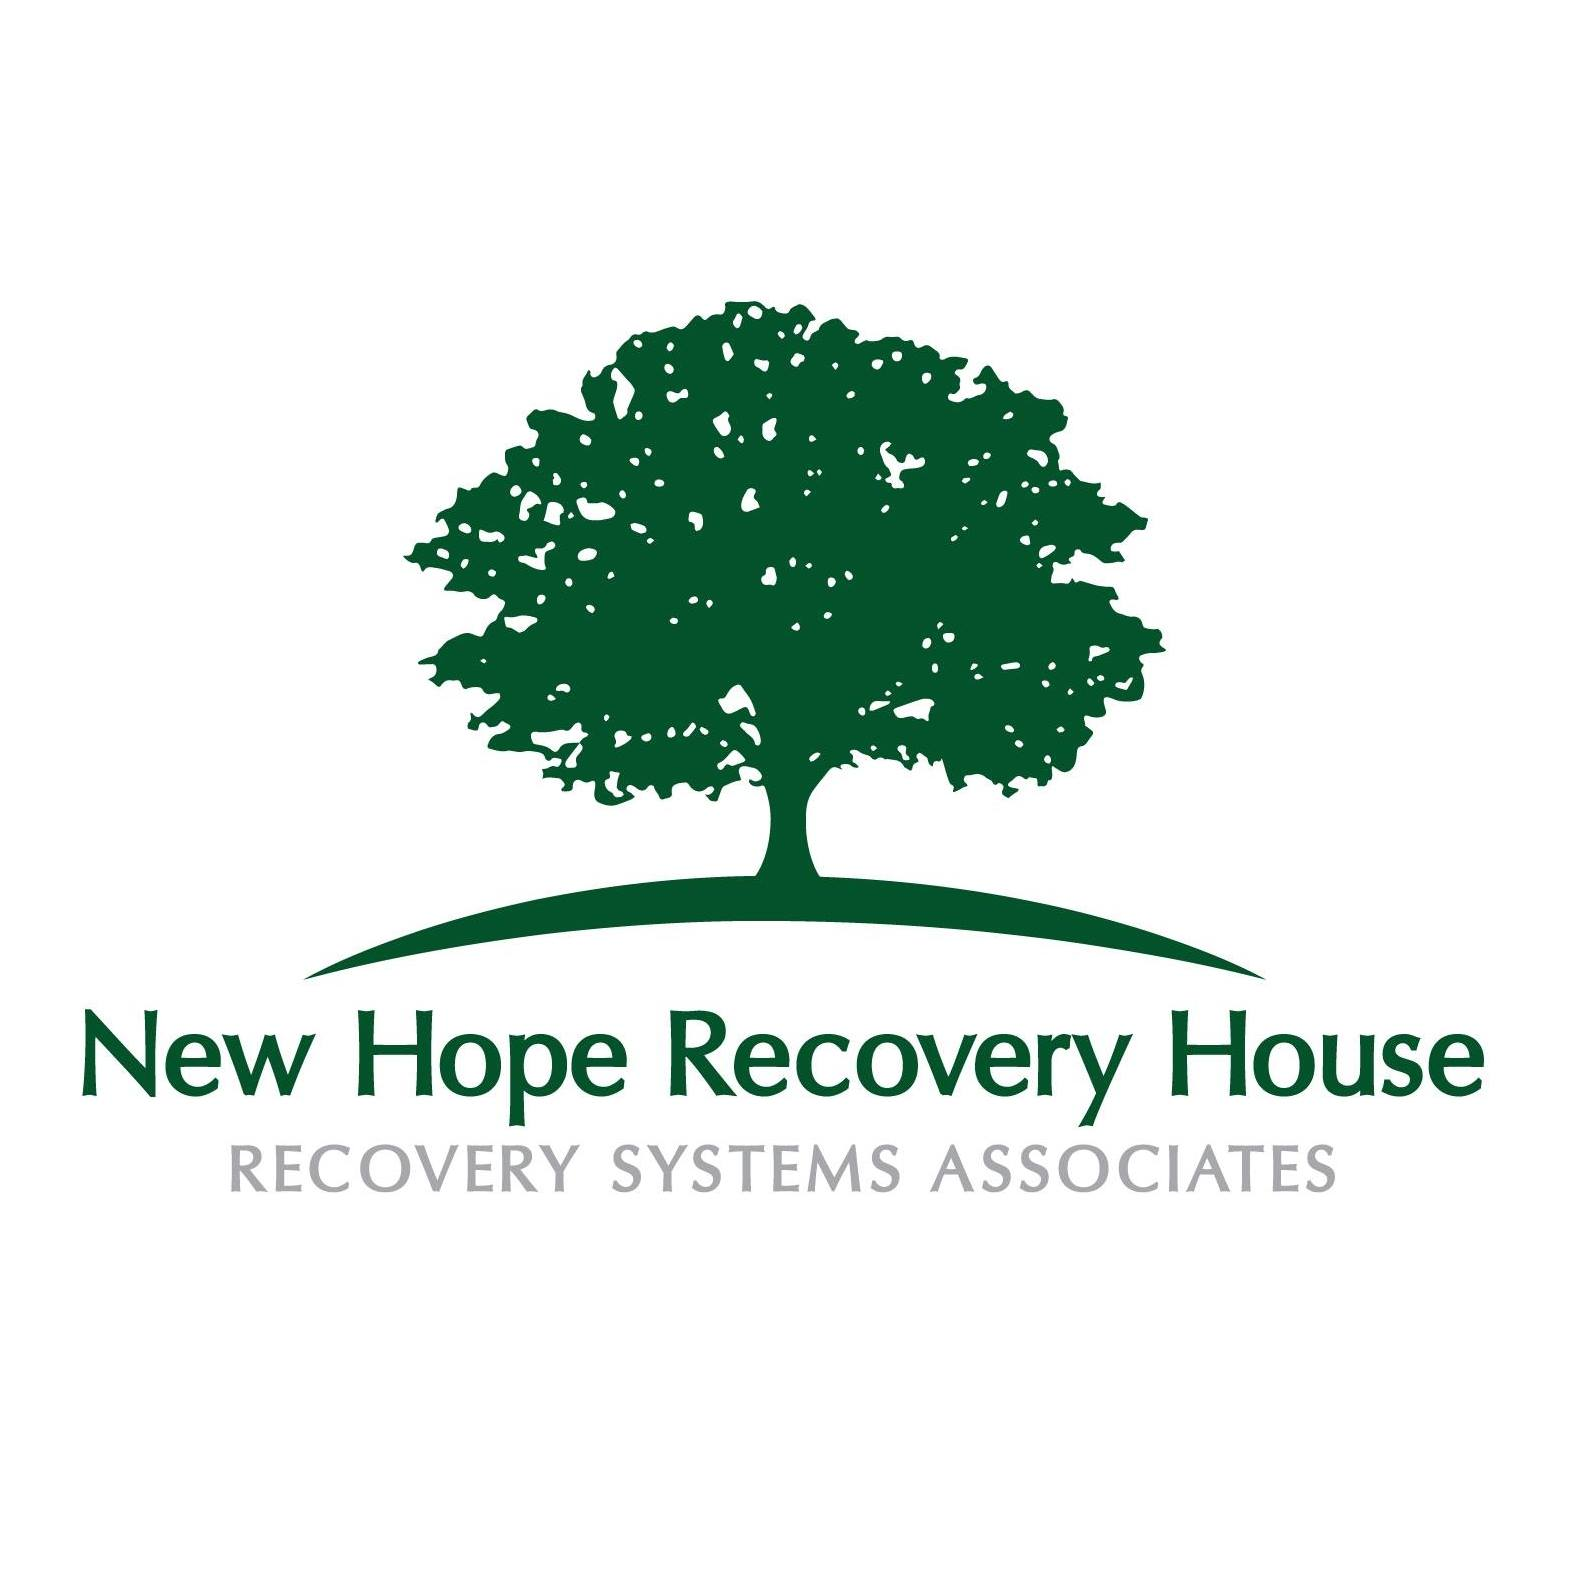 New Hope Recovery House logo